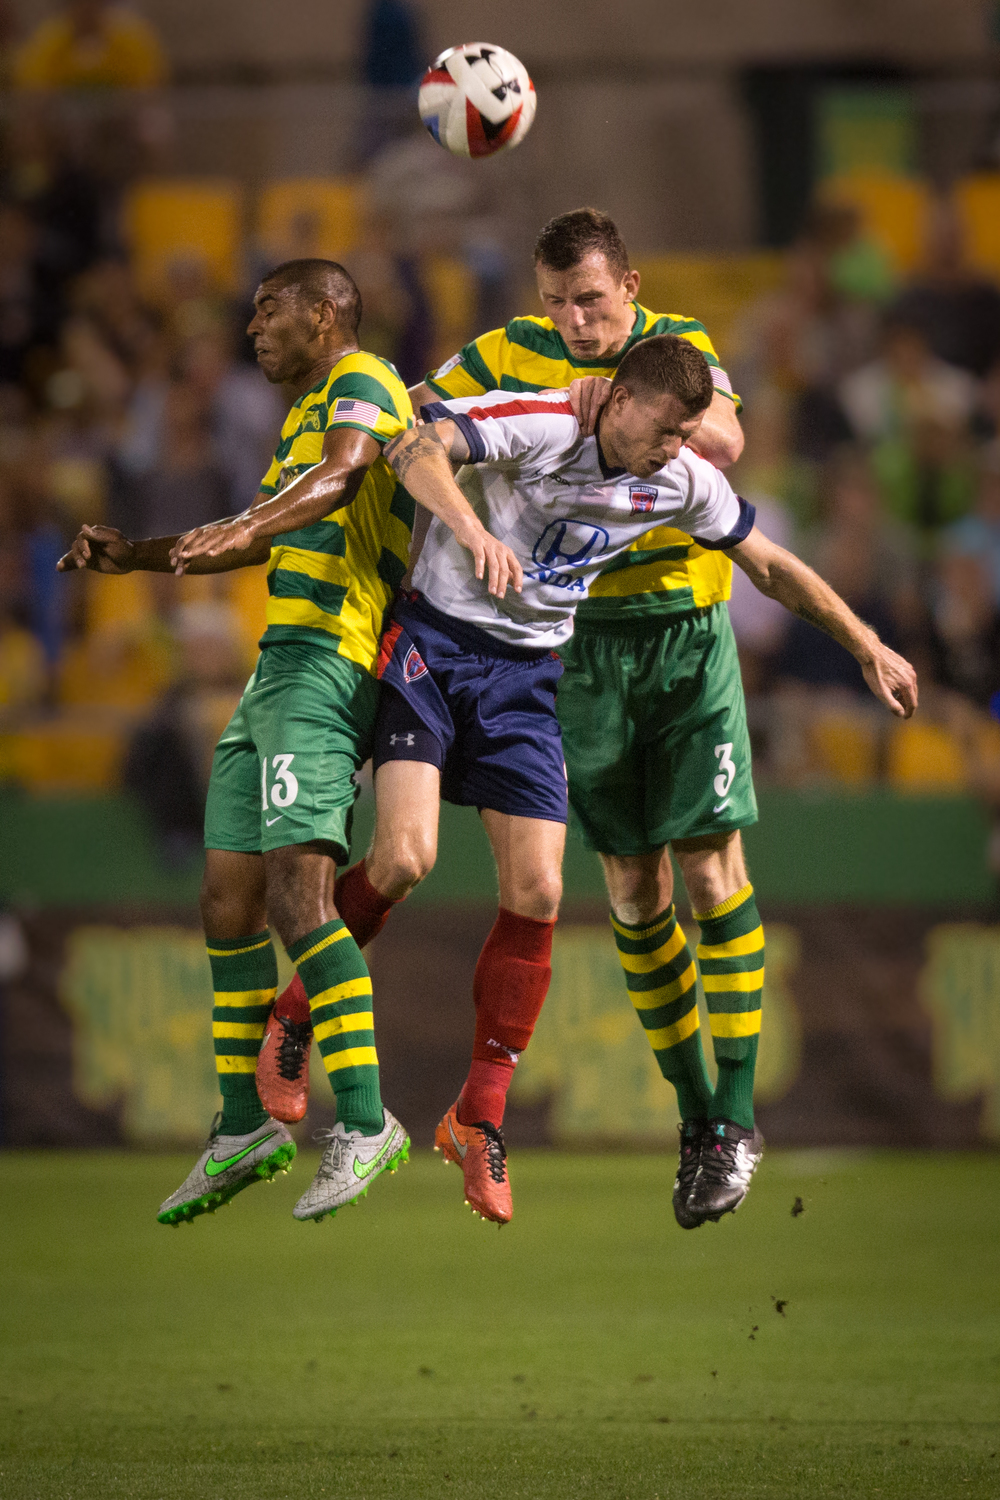 Rowdies midfielder Justin Chavez (left) and defender Neill Collins (right) go up for a header against Indy Eleven midfielder Nicki Paterson during a match at Al Lang Stadium in St. Petersburg, Fla.